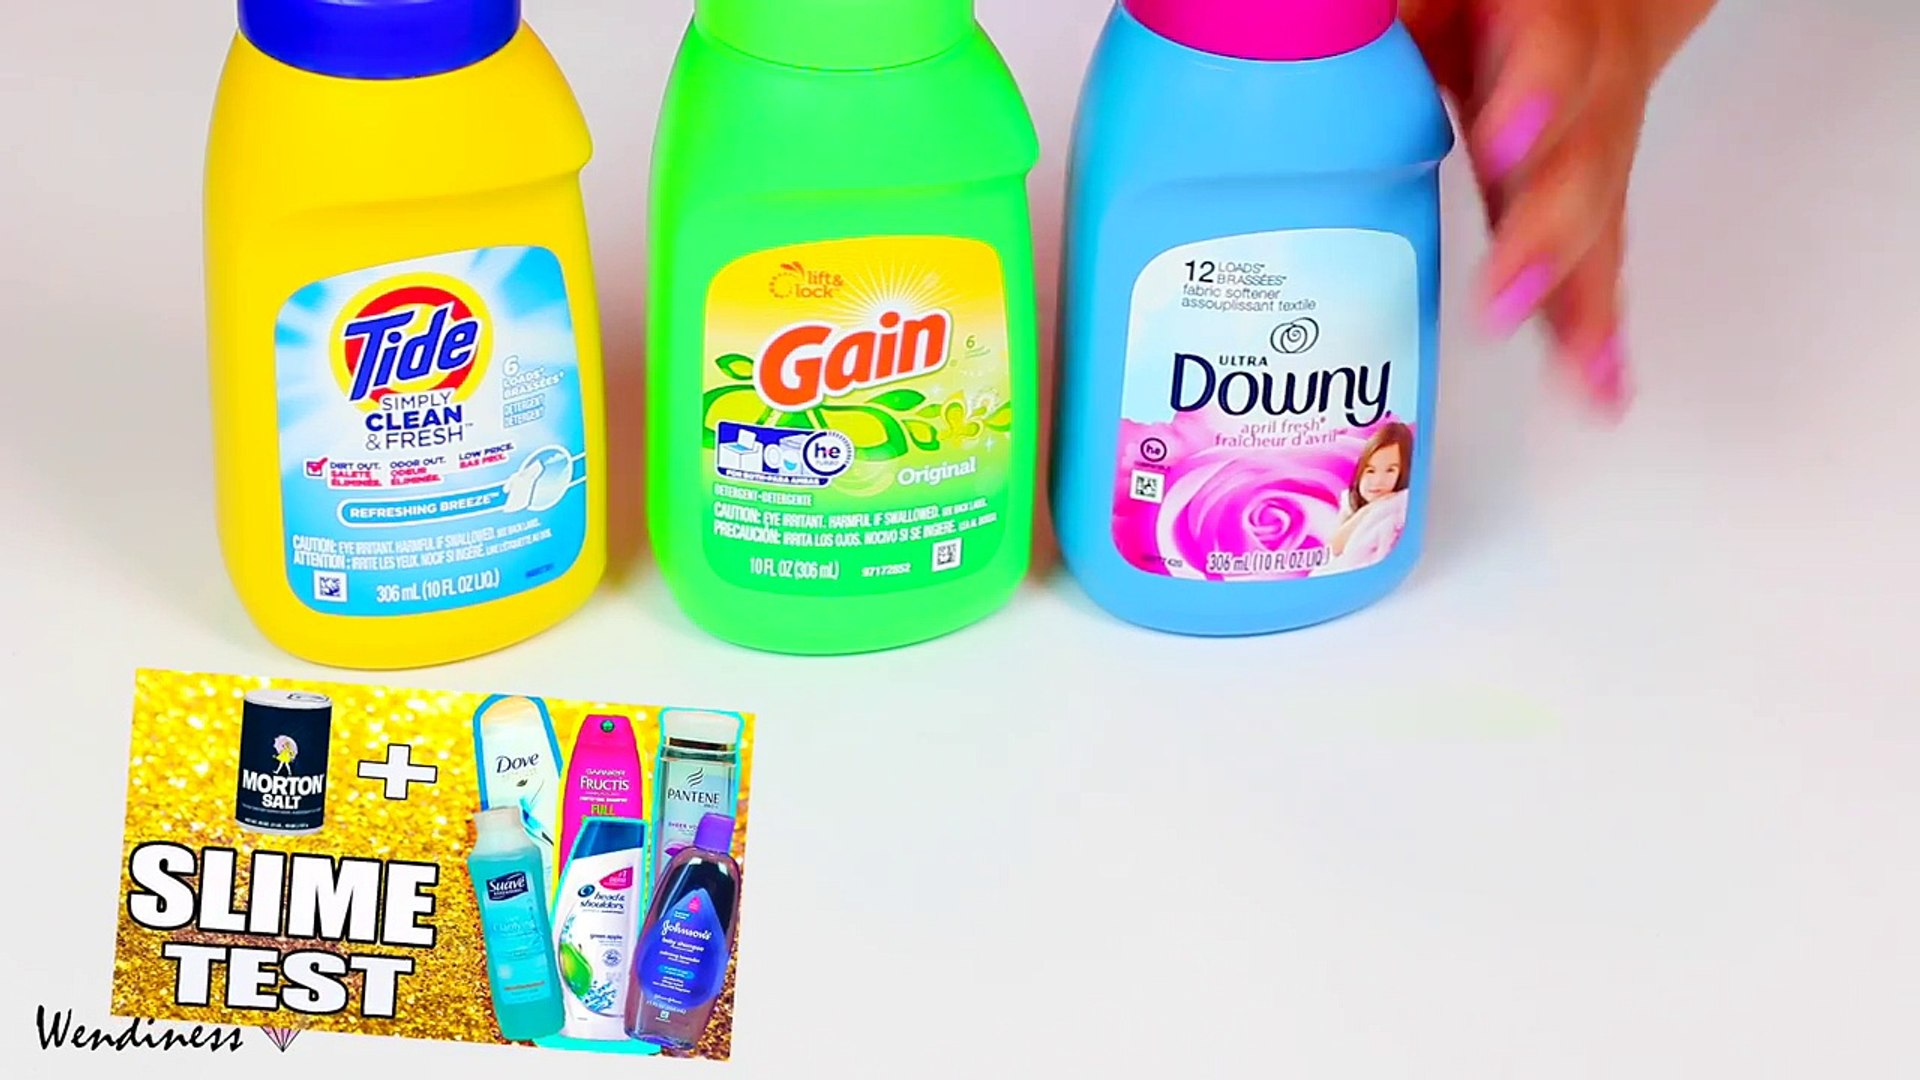 Laundry Detergent Slime Test With Tide Gain Fabric Softner Slime With Downy Suavitel Video Dailymotion